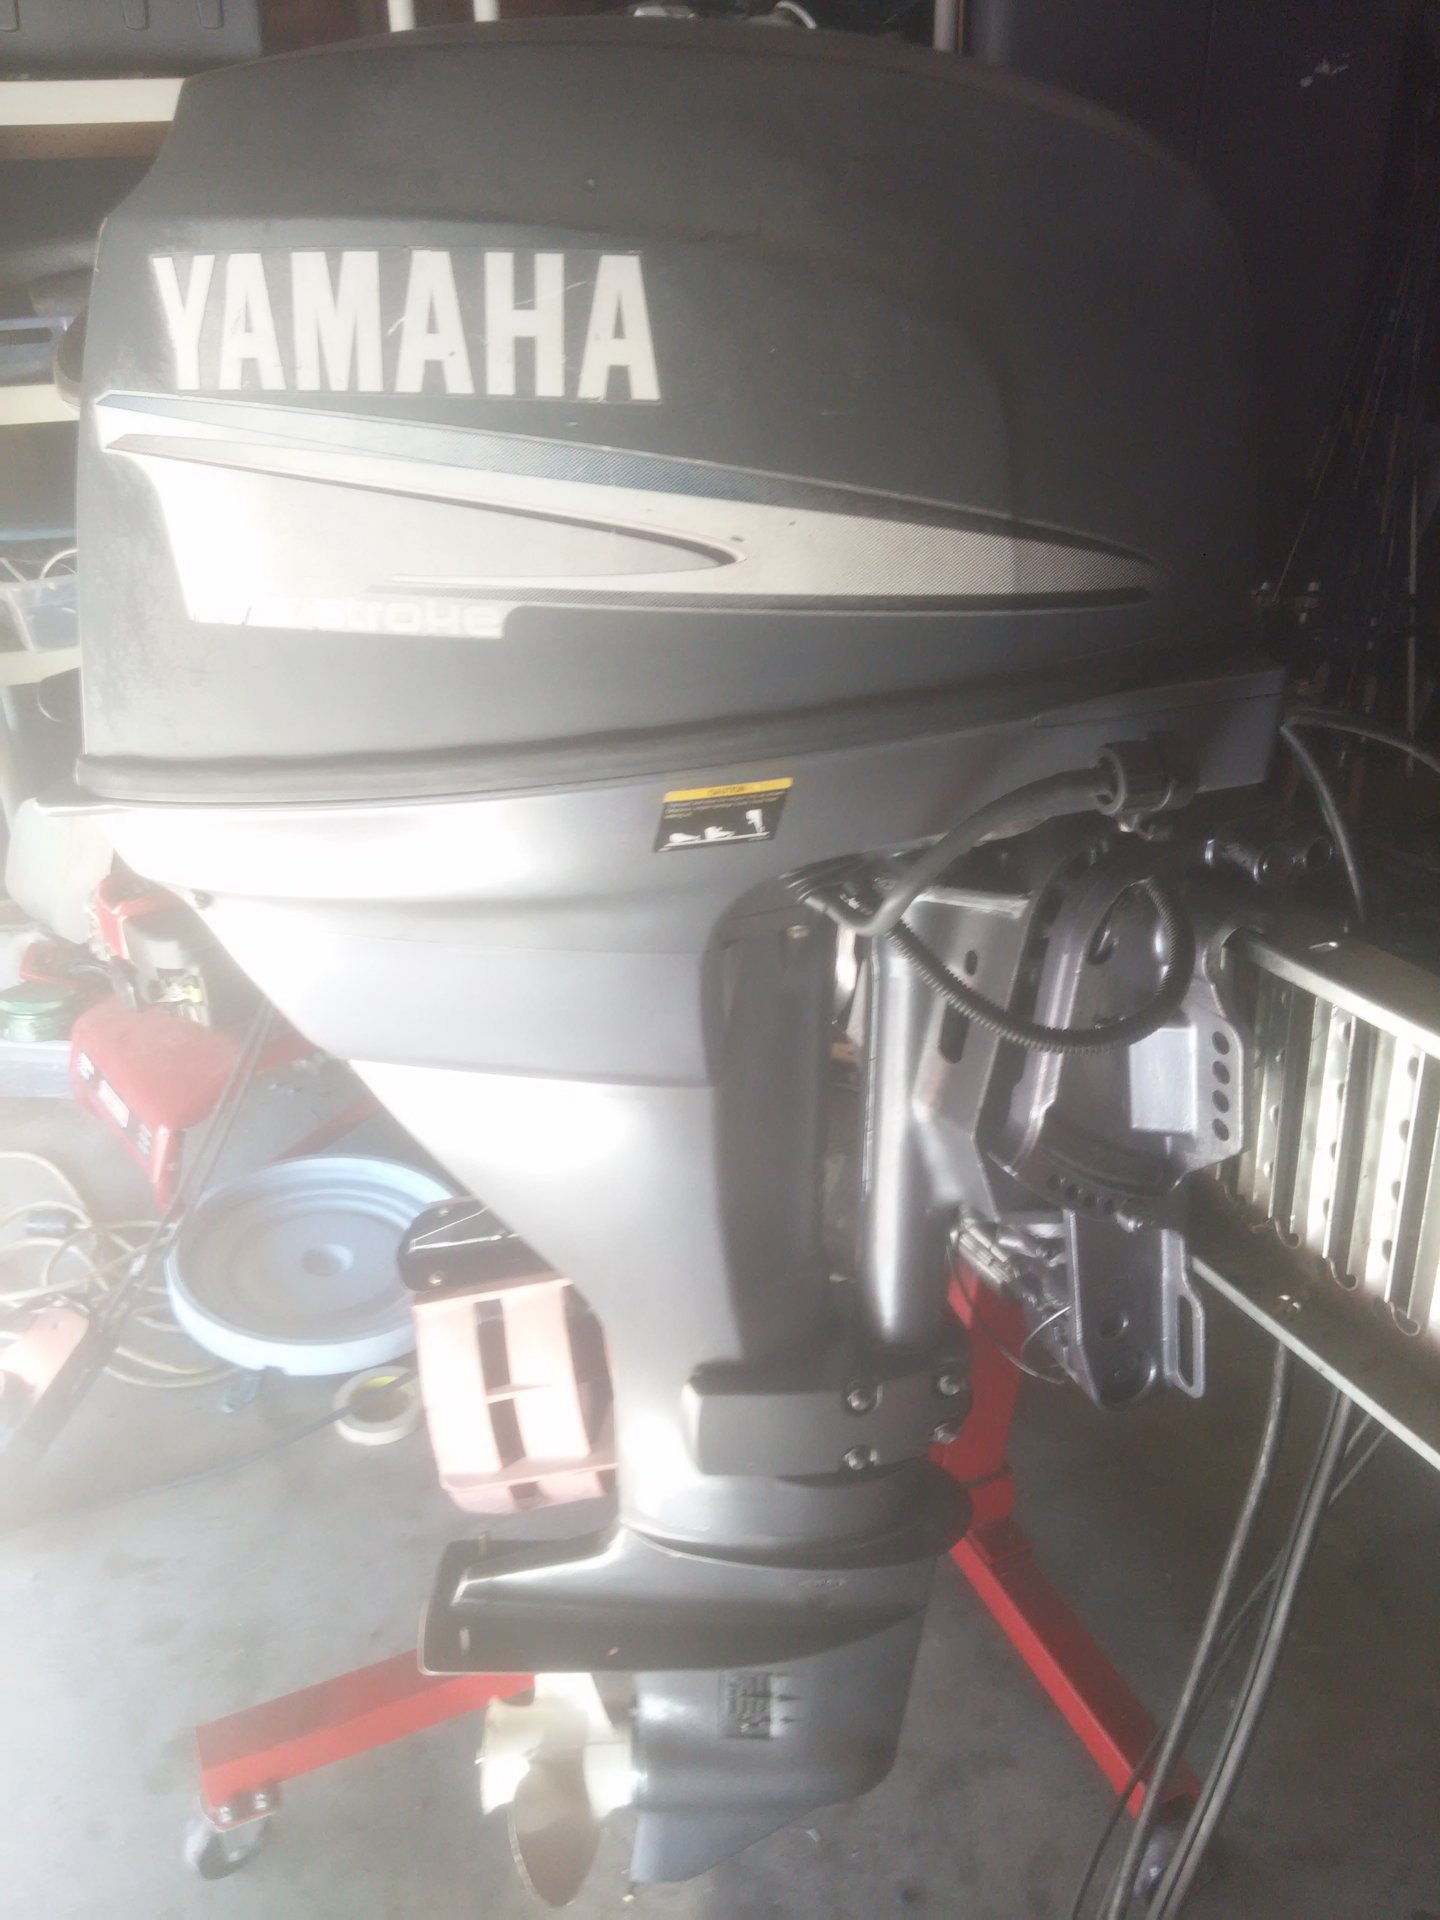 Yamaha 25 hp four stroke outboard motor controls for Yamaha outboard service